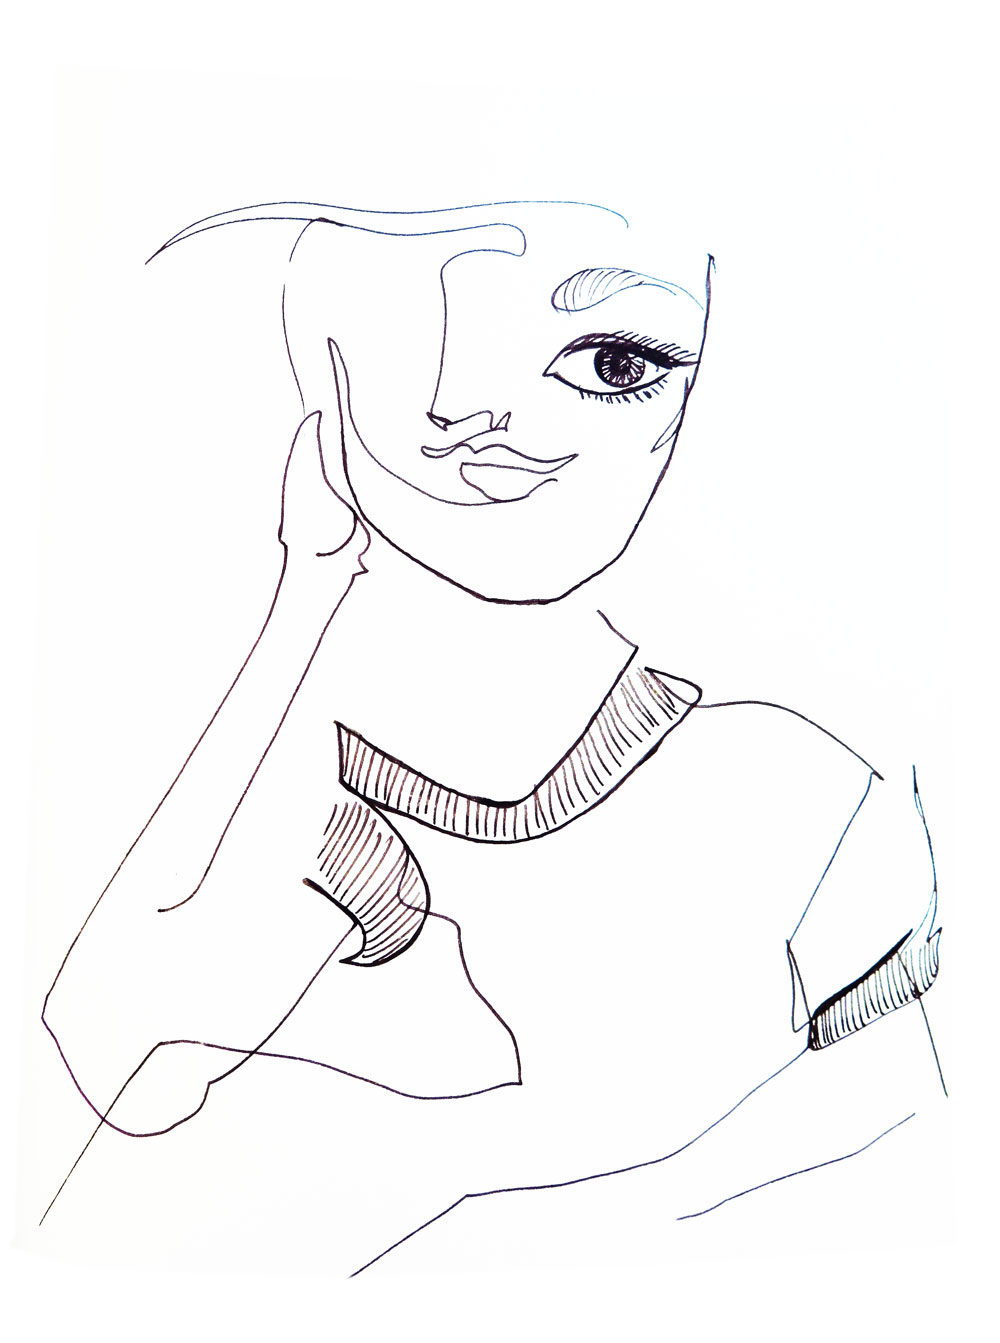 Abstract fine line drawing on a woman on pen on paper